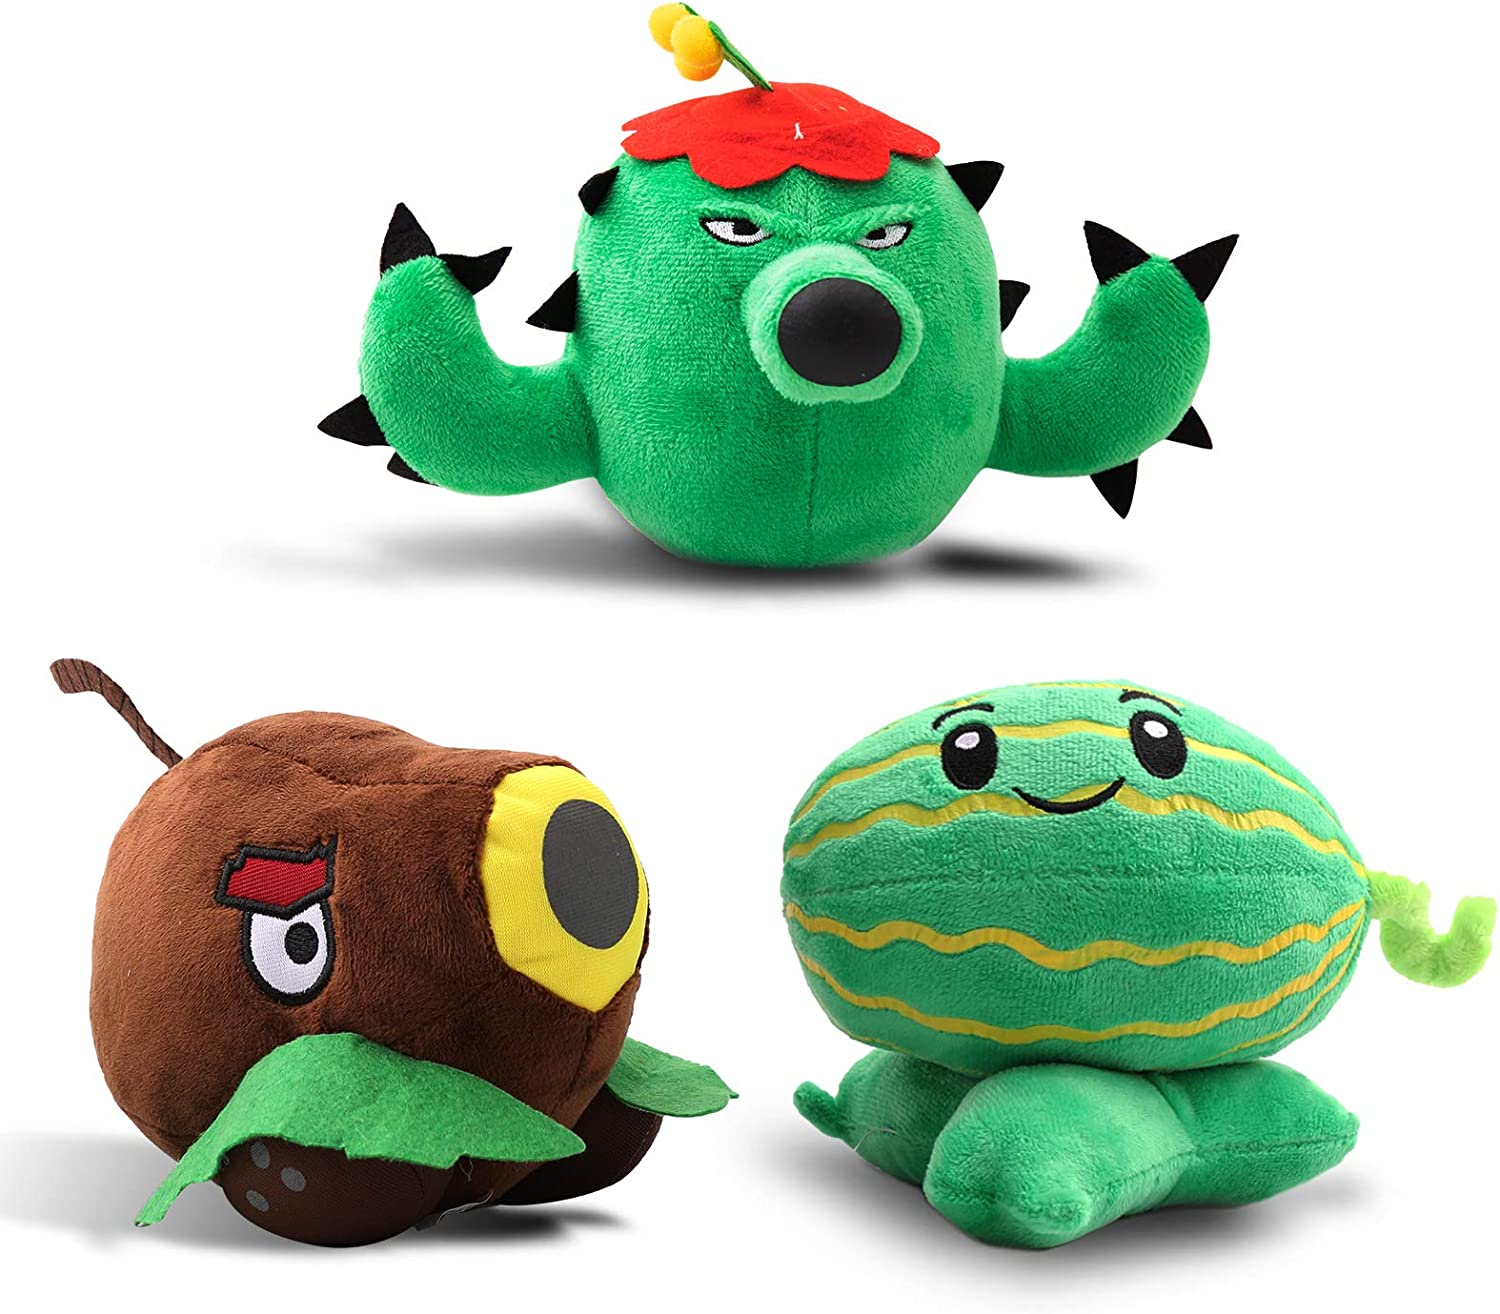 Maikerry 3 Pieces Plush Plants vs. Zombies 1&2 Figure Toy,Great Gifts for Kids Birthday,Halloween and Christmas